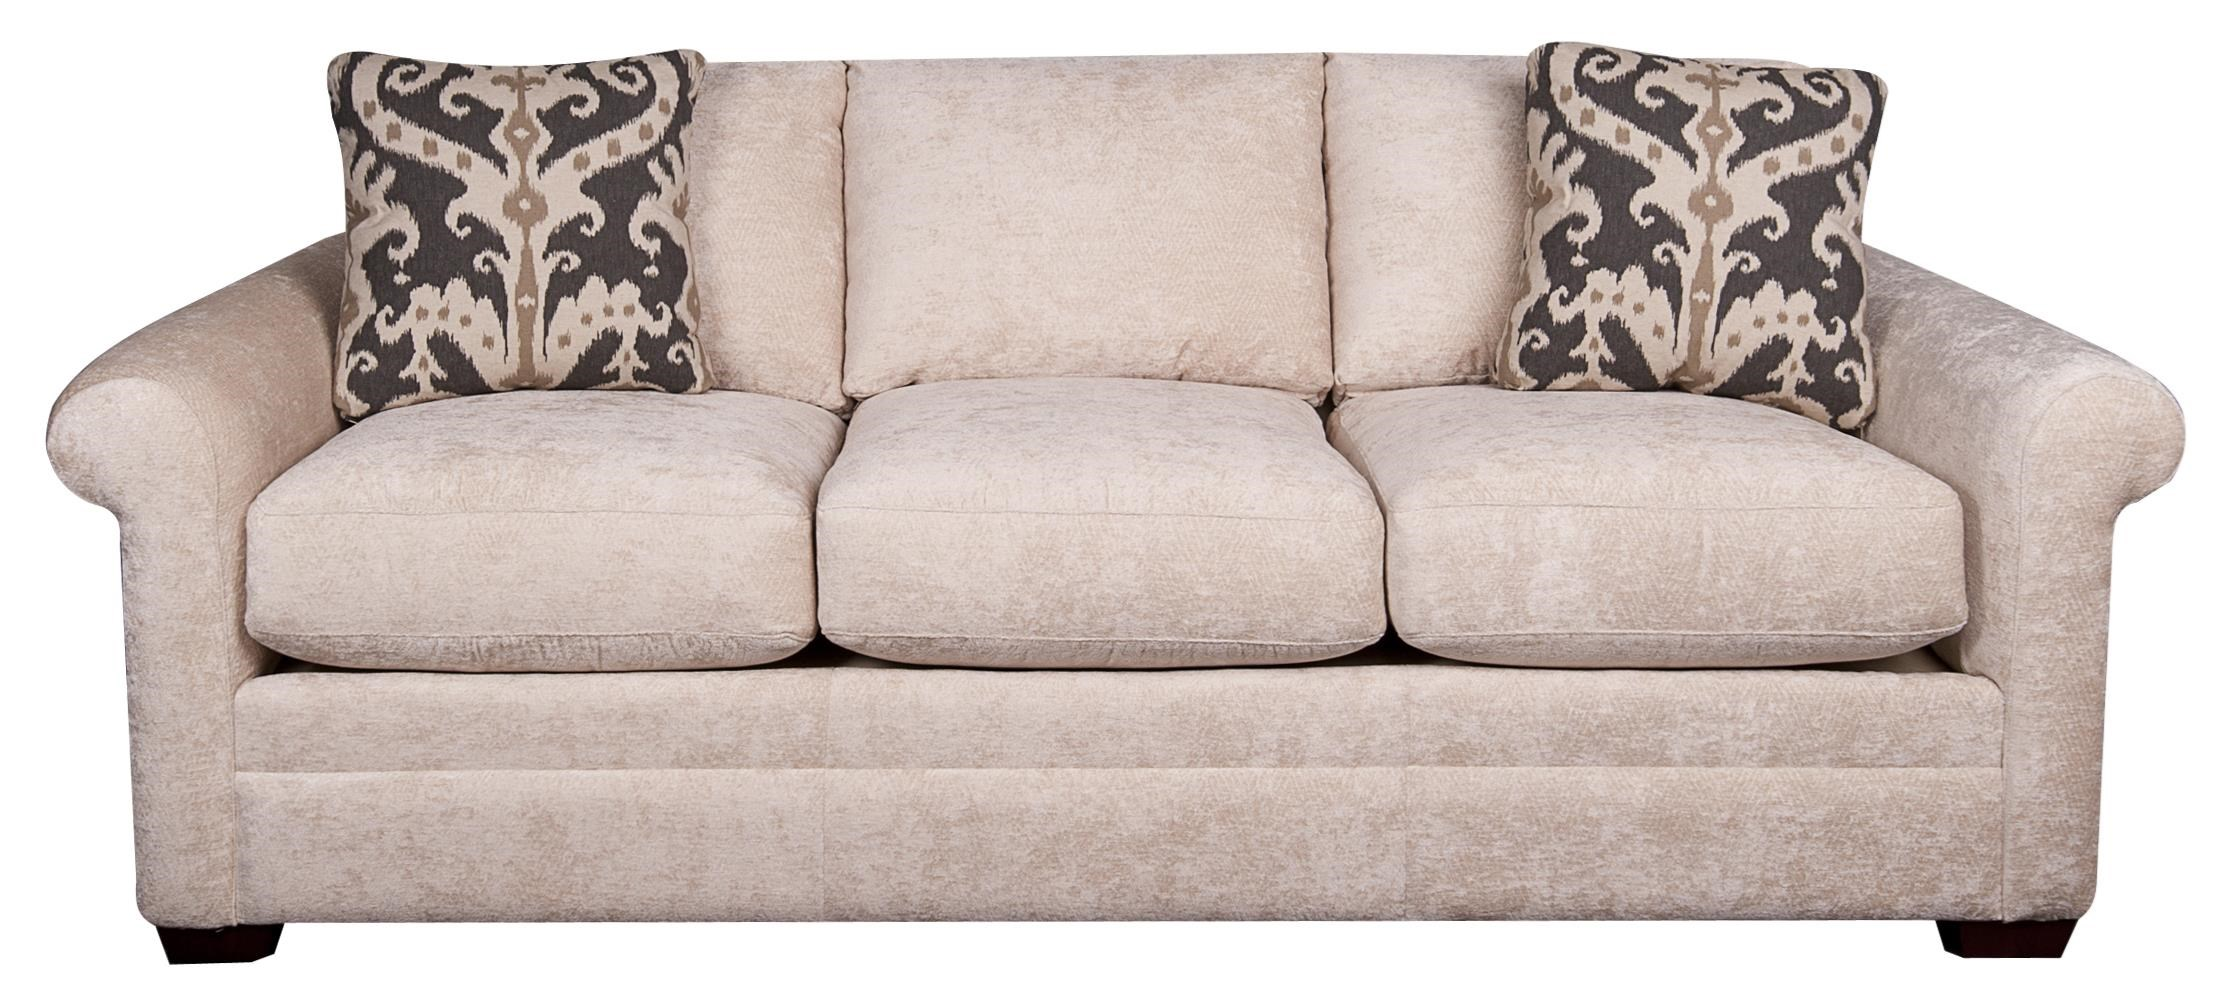 Main & Madison Bjorn Bjorn Sofa - Item Number: 166548726